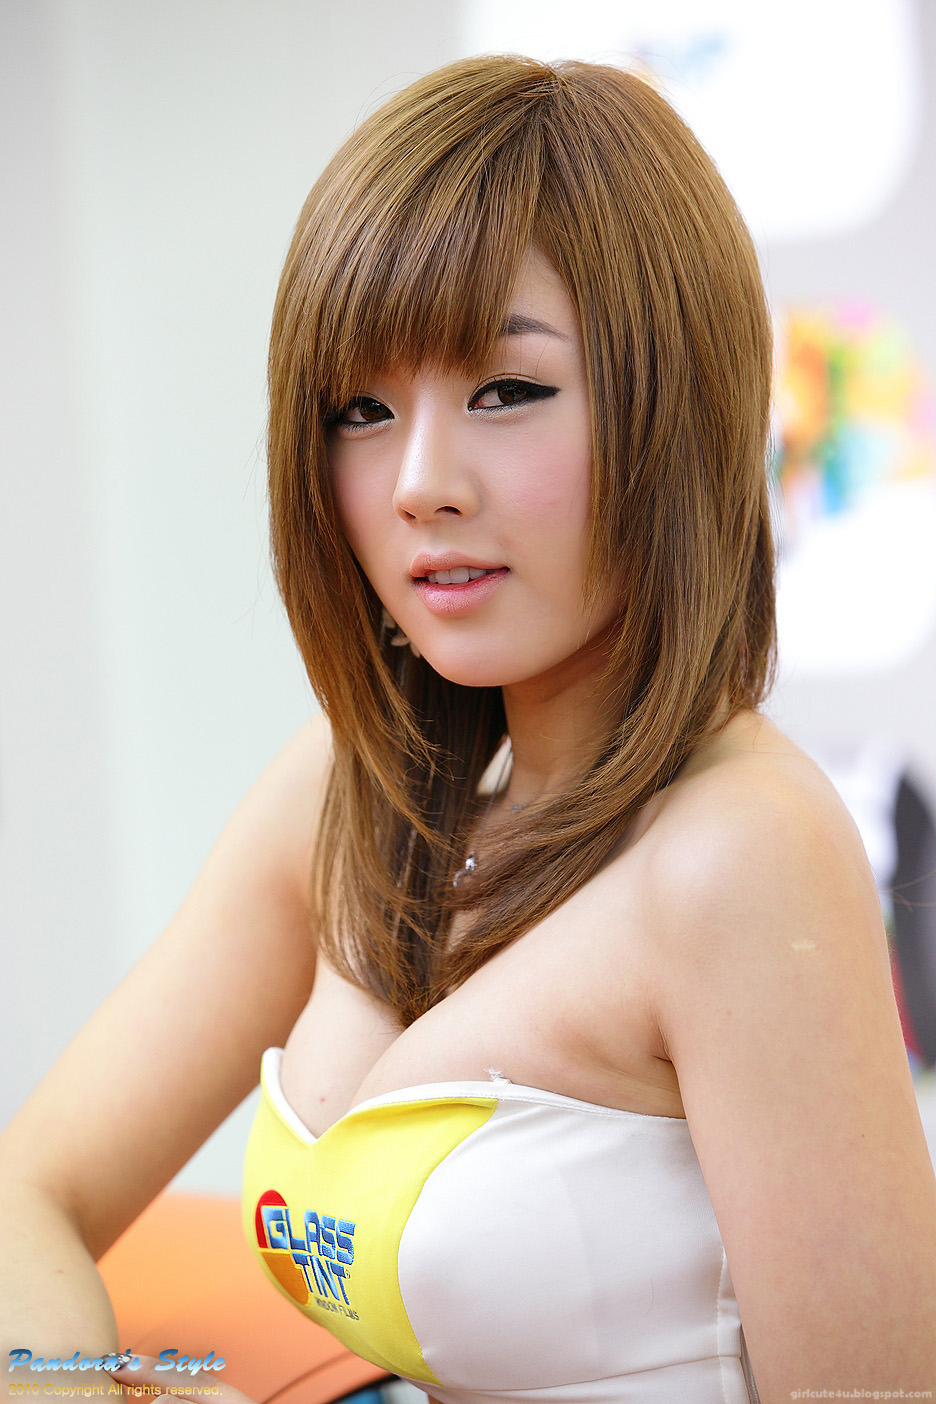 godley asian girl personals International asian dating - trusted by over 25 million singles asiandating is part of the well-established cupid media network that operates over 30 reputable niche dating sites with a commitment to connecting singles worldwide, we bring asia to you.